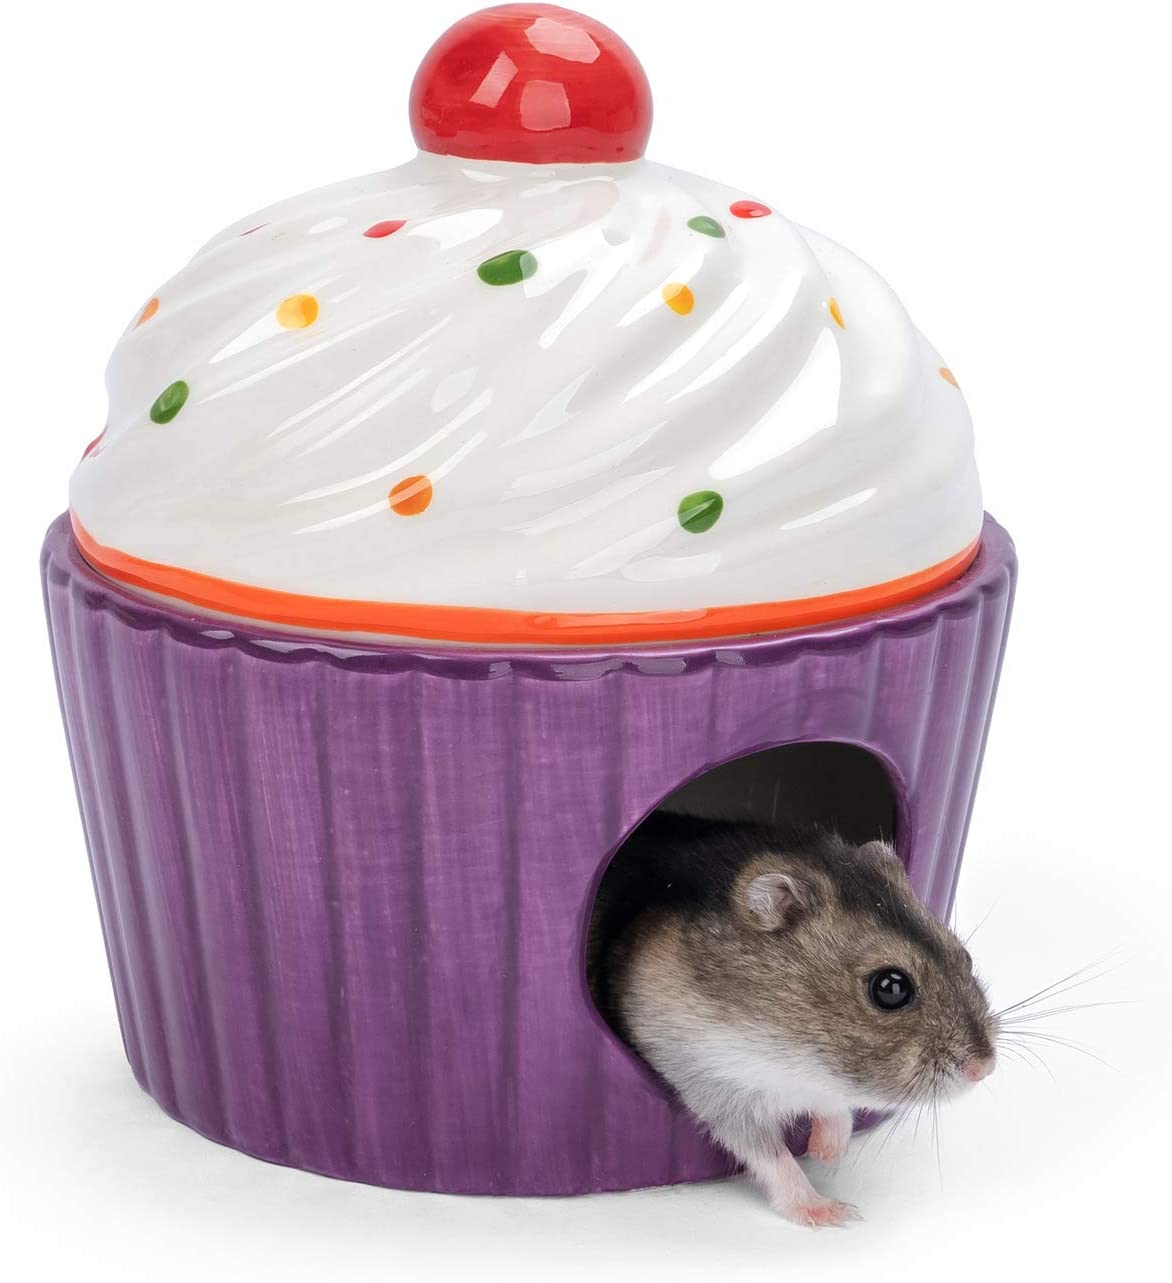 Niteangel Ceramic Dwarf Hamster House - Cute Small Hideout & Cool Bed for Robo Hamsters Gerbil Mice or Other Similar-Sized Small Animals